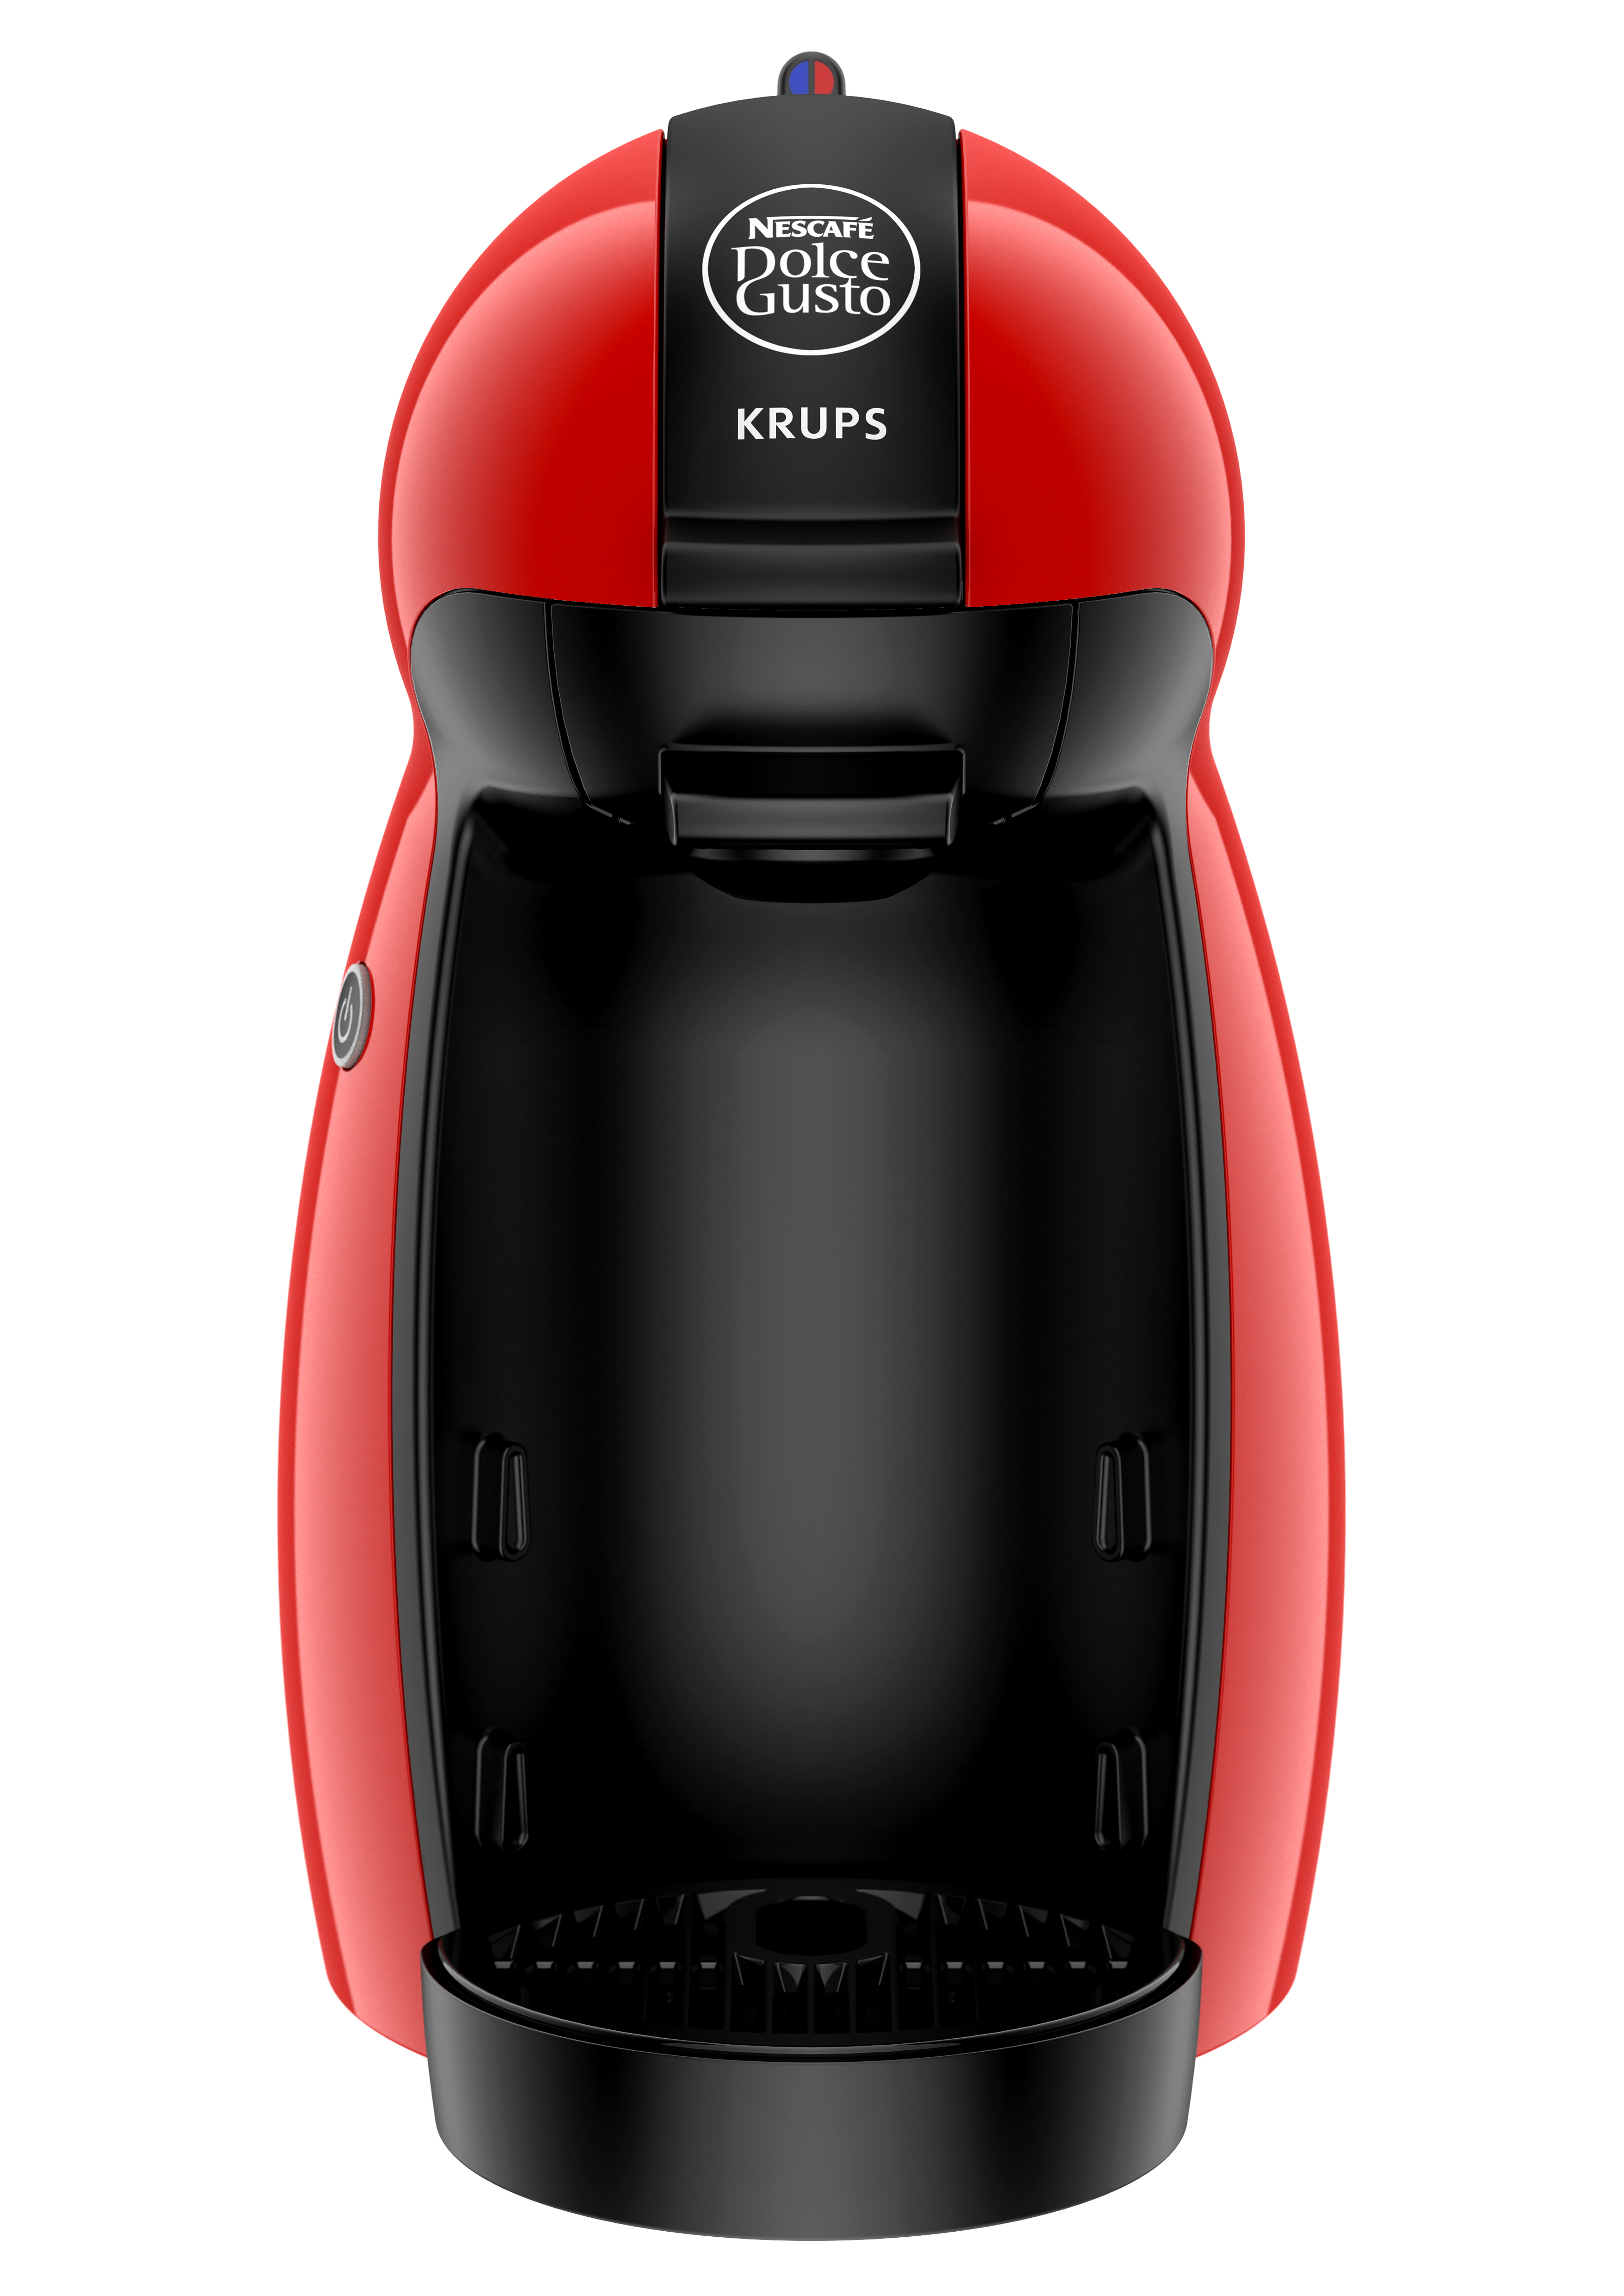 coffee machine dolce gusto pod piccolo krups kp100640 red nescafe beverage maker 10942210092 ebay. Black Bedroom Furniture Sets. Home Design Ideas